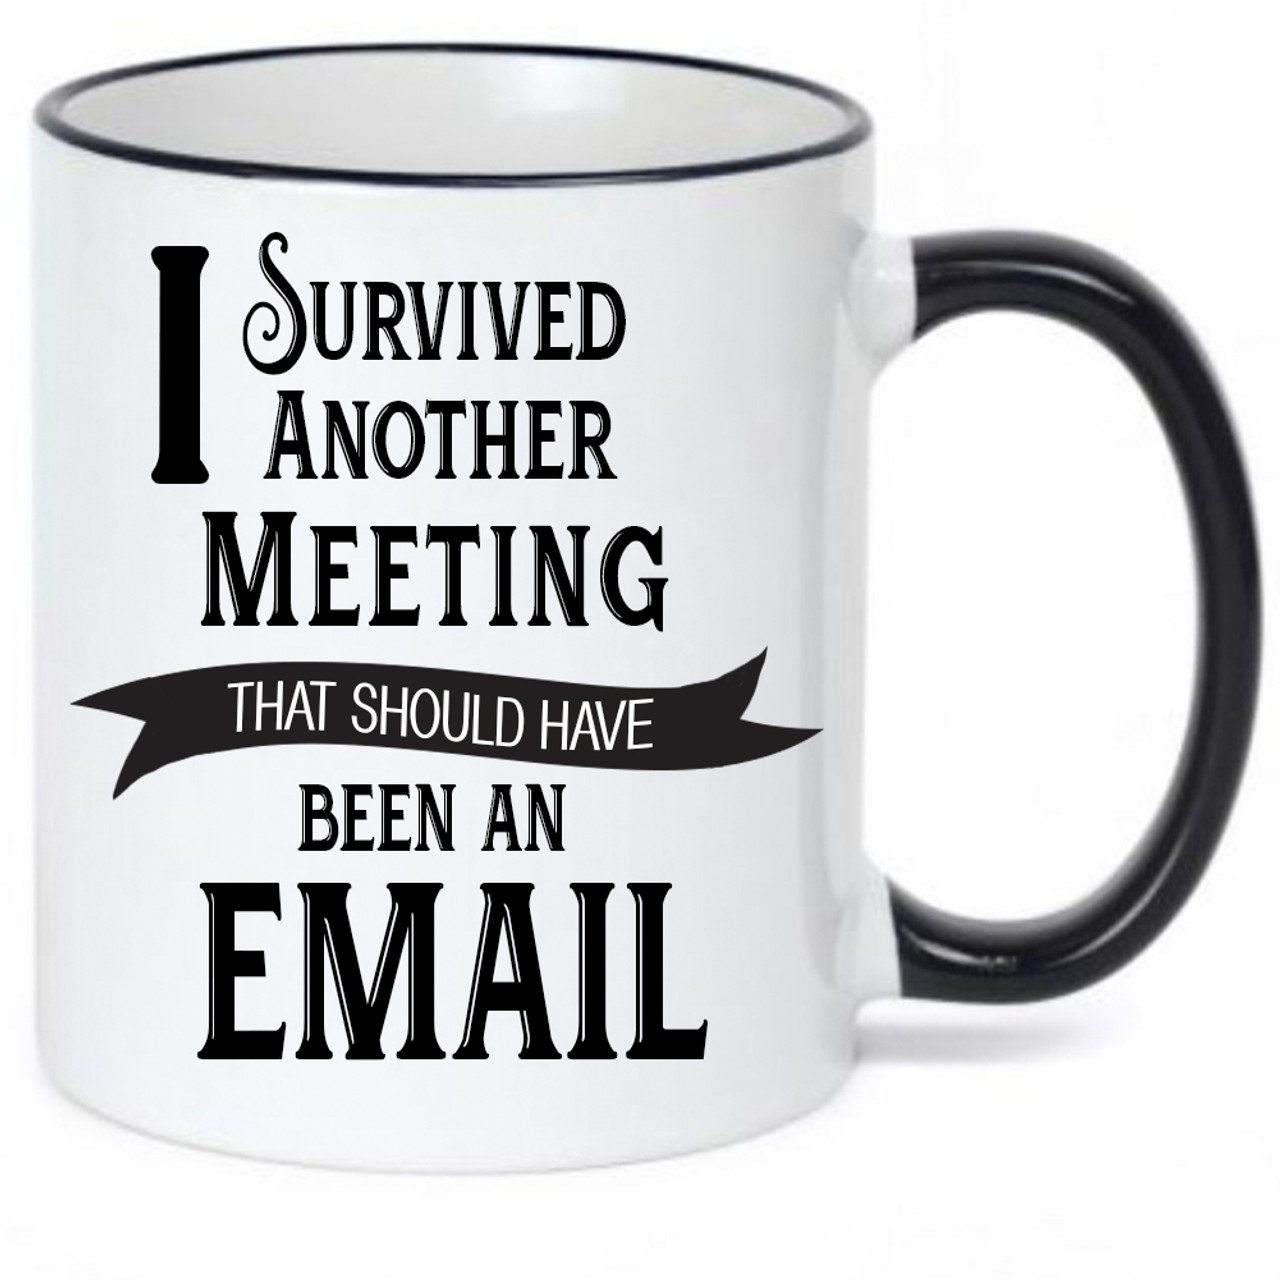 I Survived Another Meeting that Should Have Been an Email ...